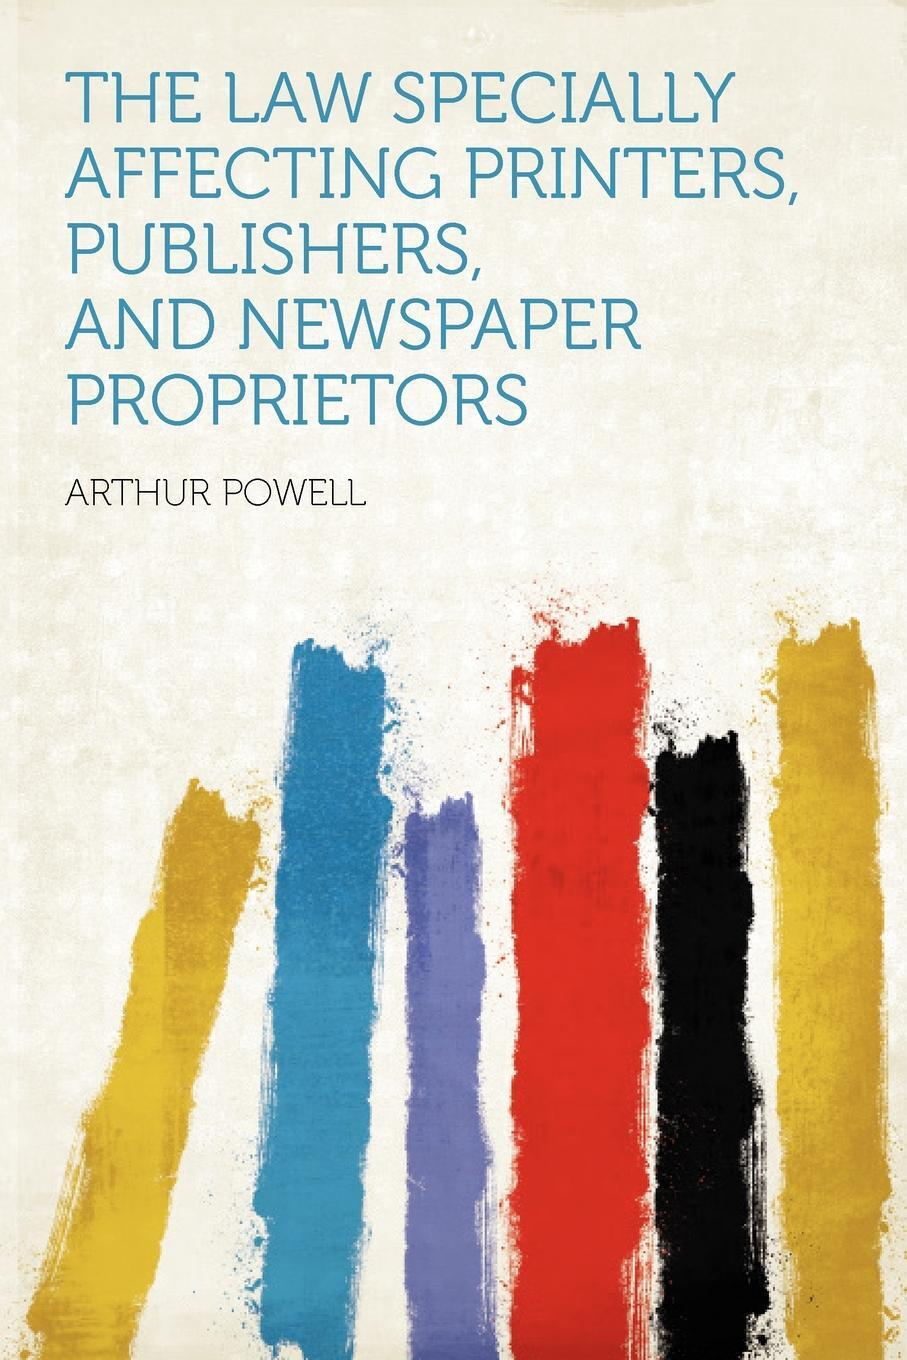 The Law Specially Affecting Printers, Publishers, and Newspaper Proprietors. Arthur Powell